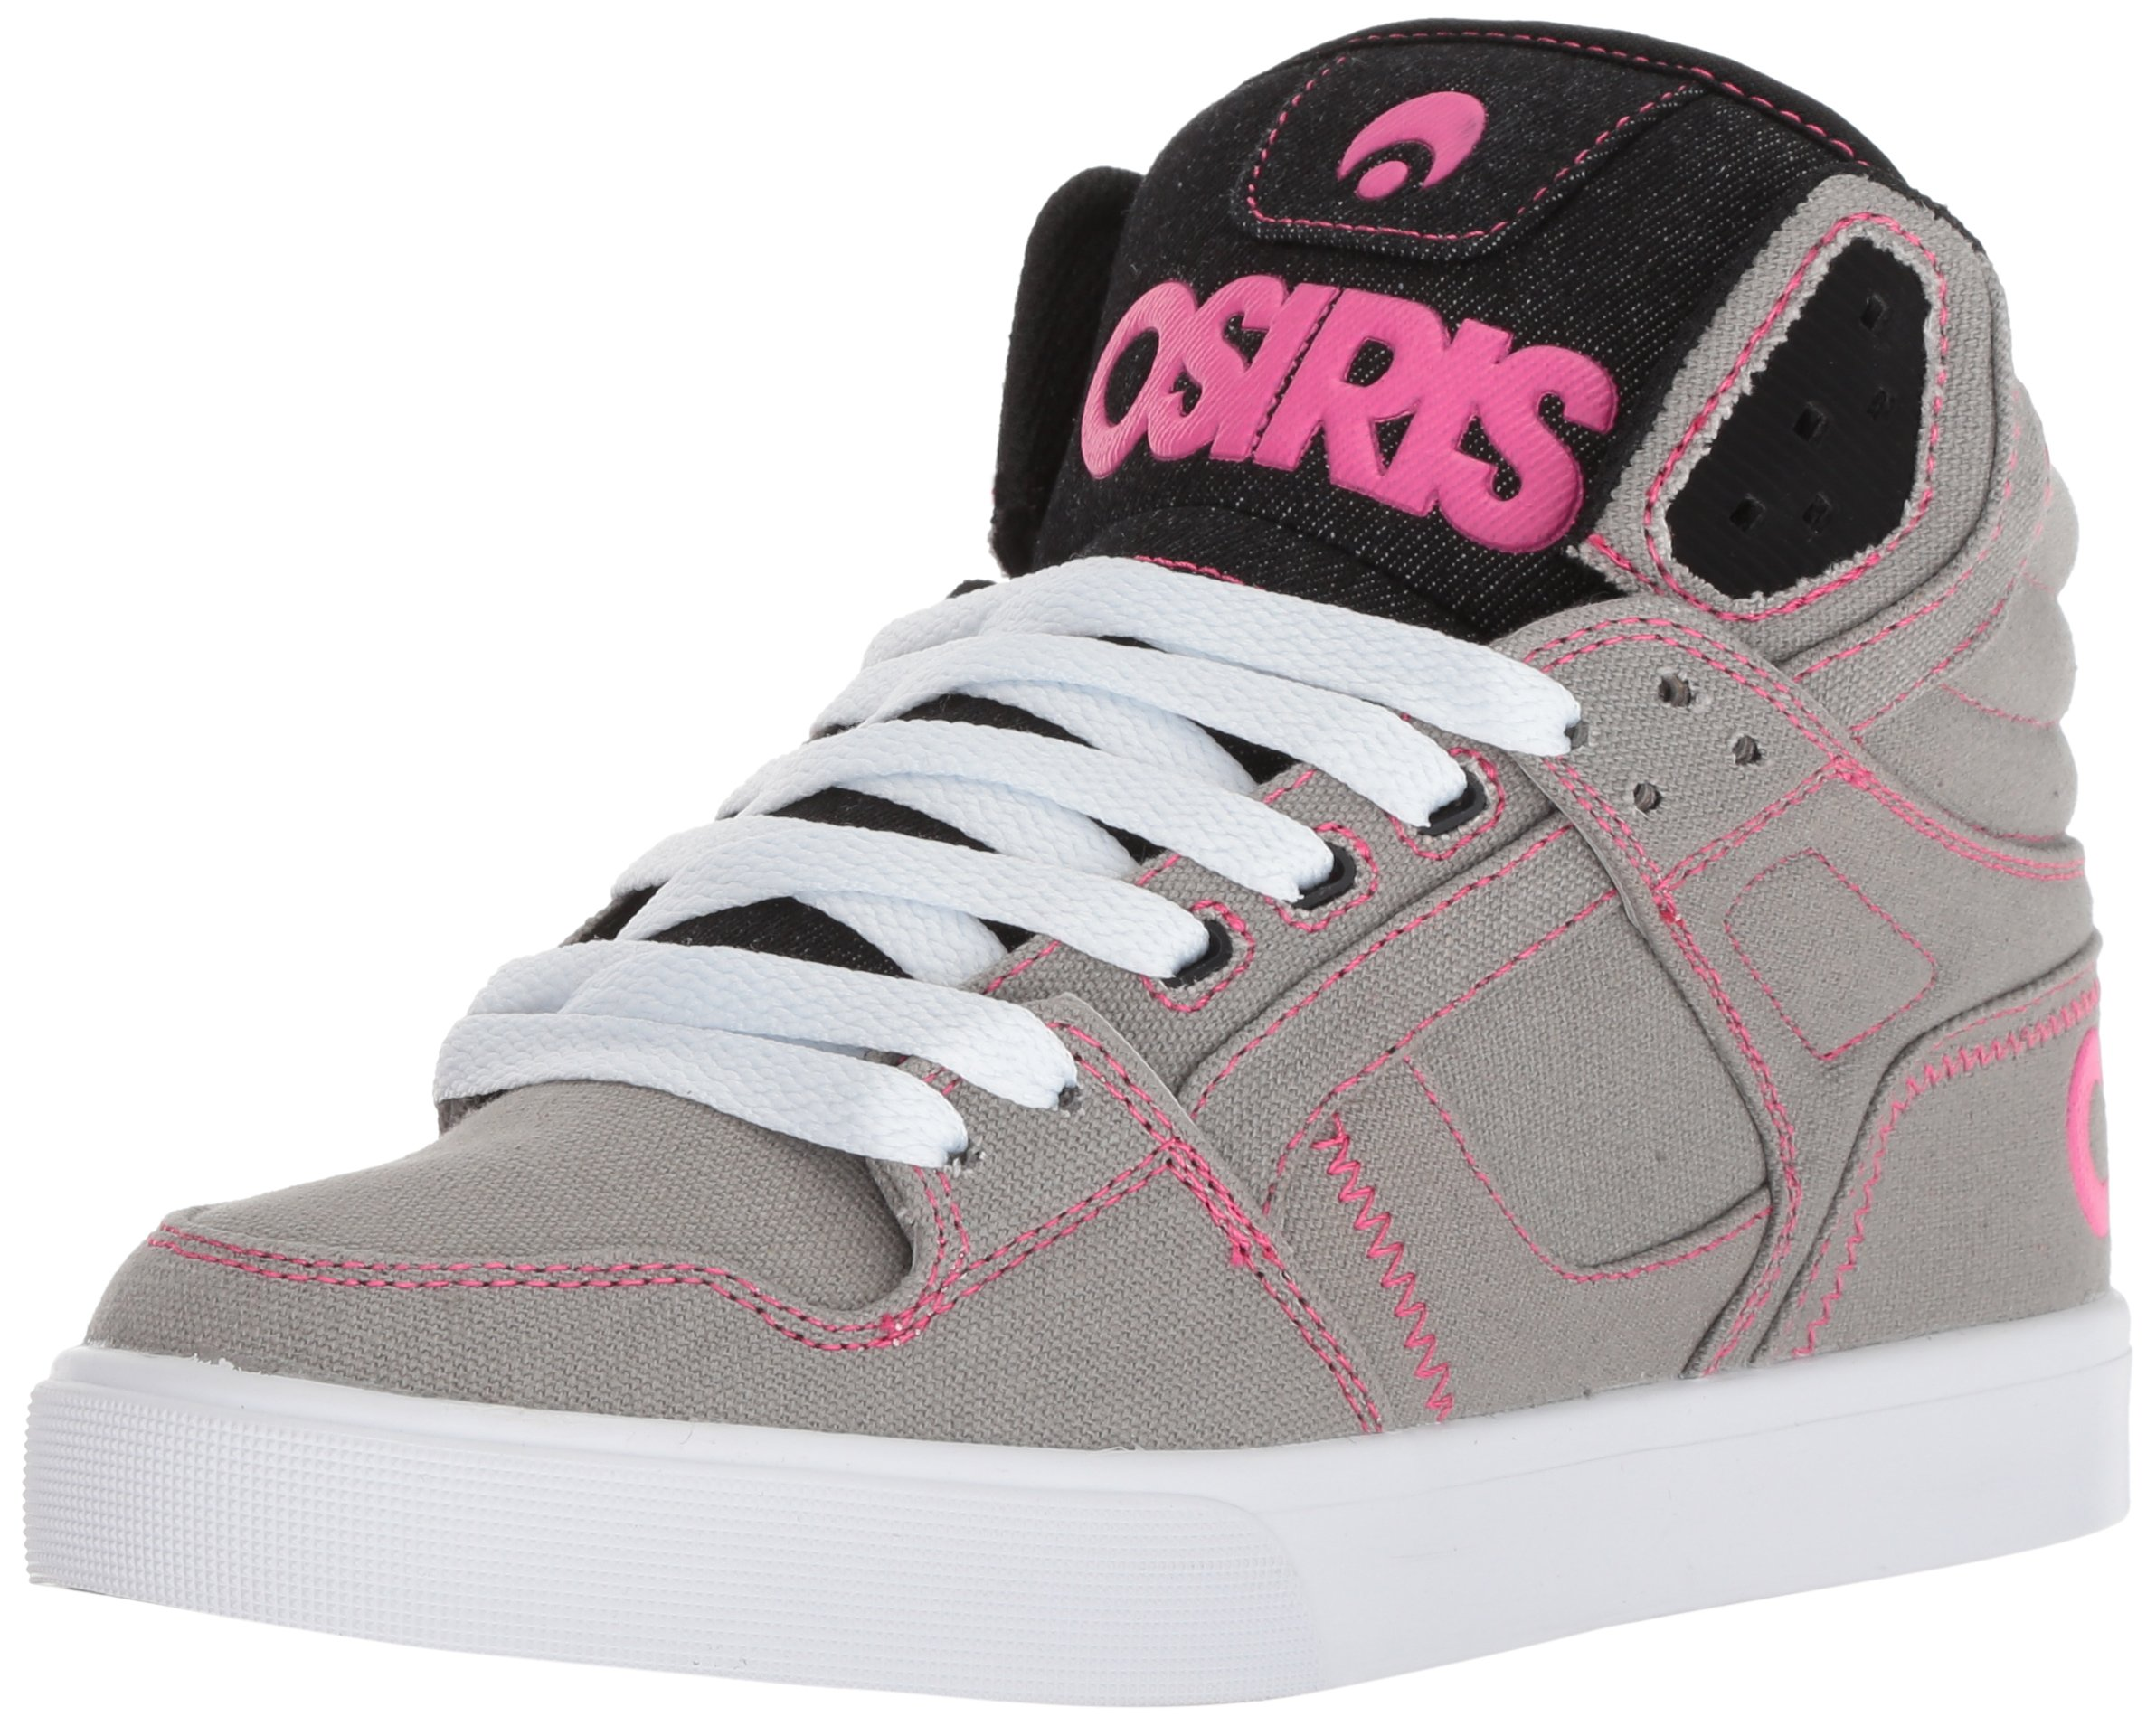 Osiris Women's Clone Skate Shoe, Grey/White/Pink, 10.5 M US